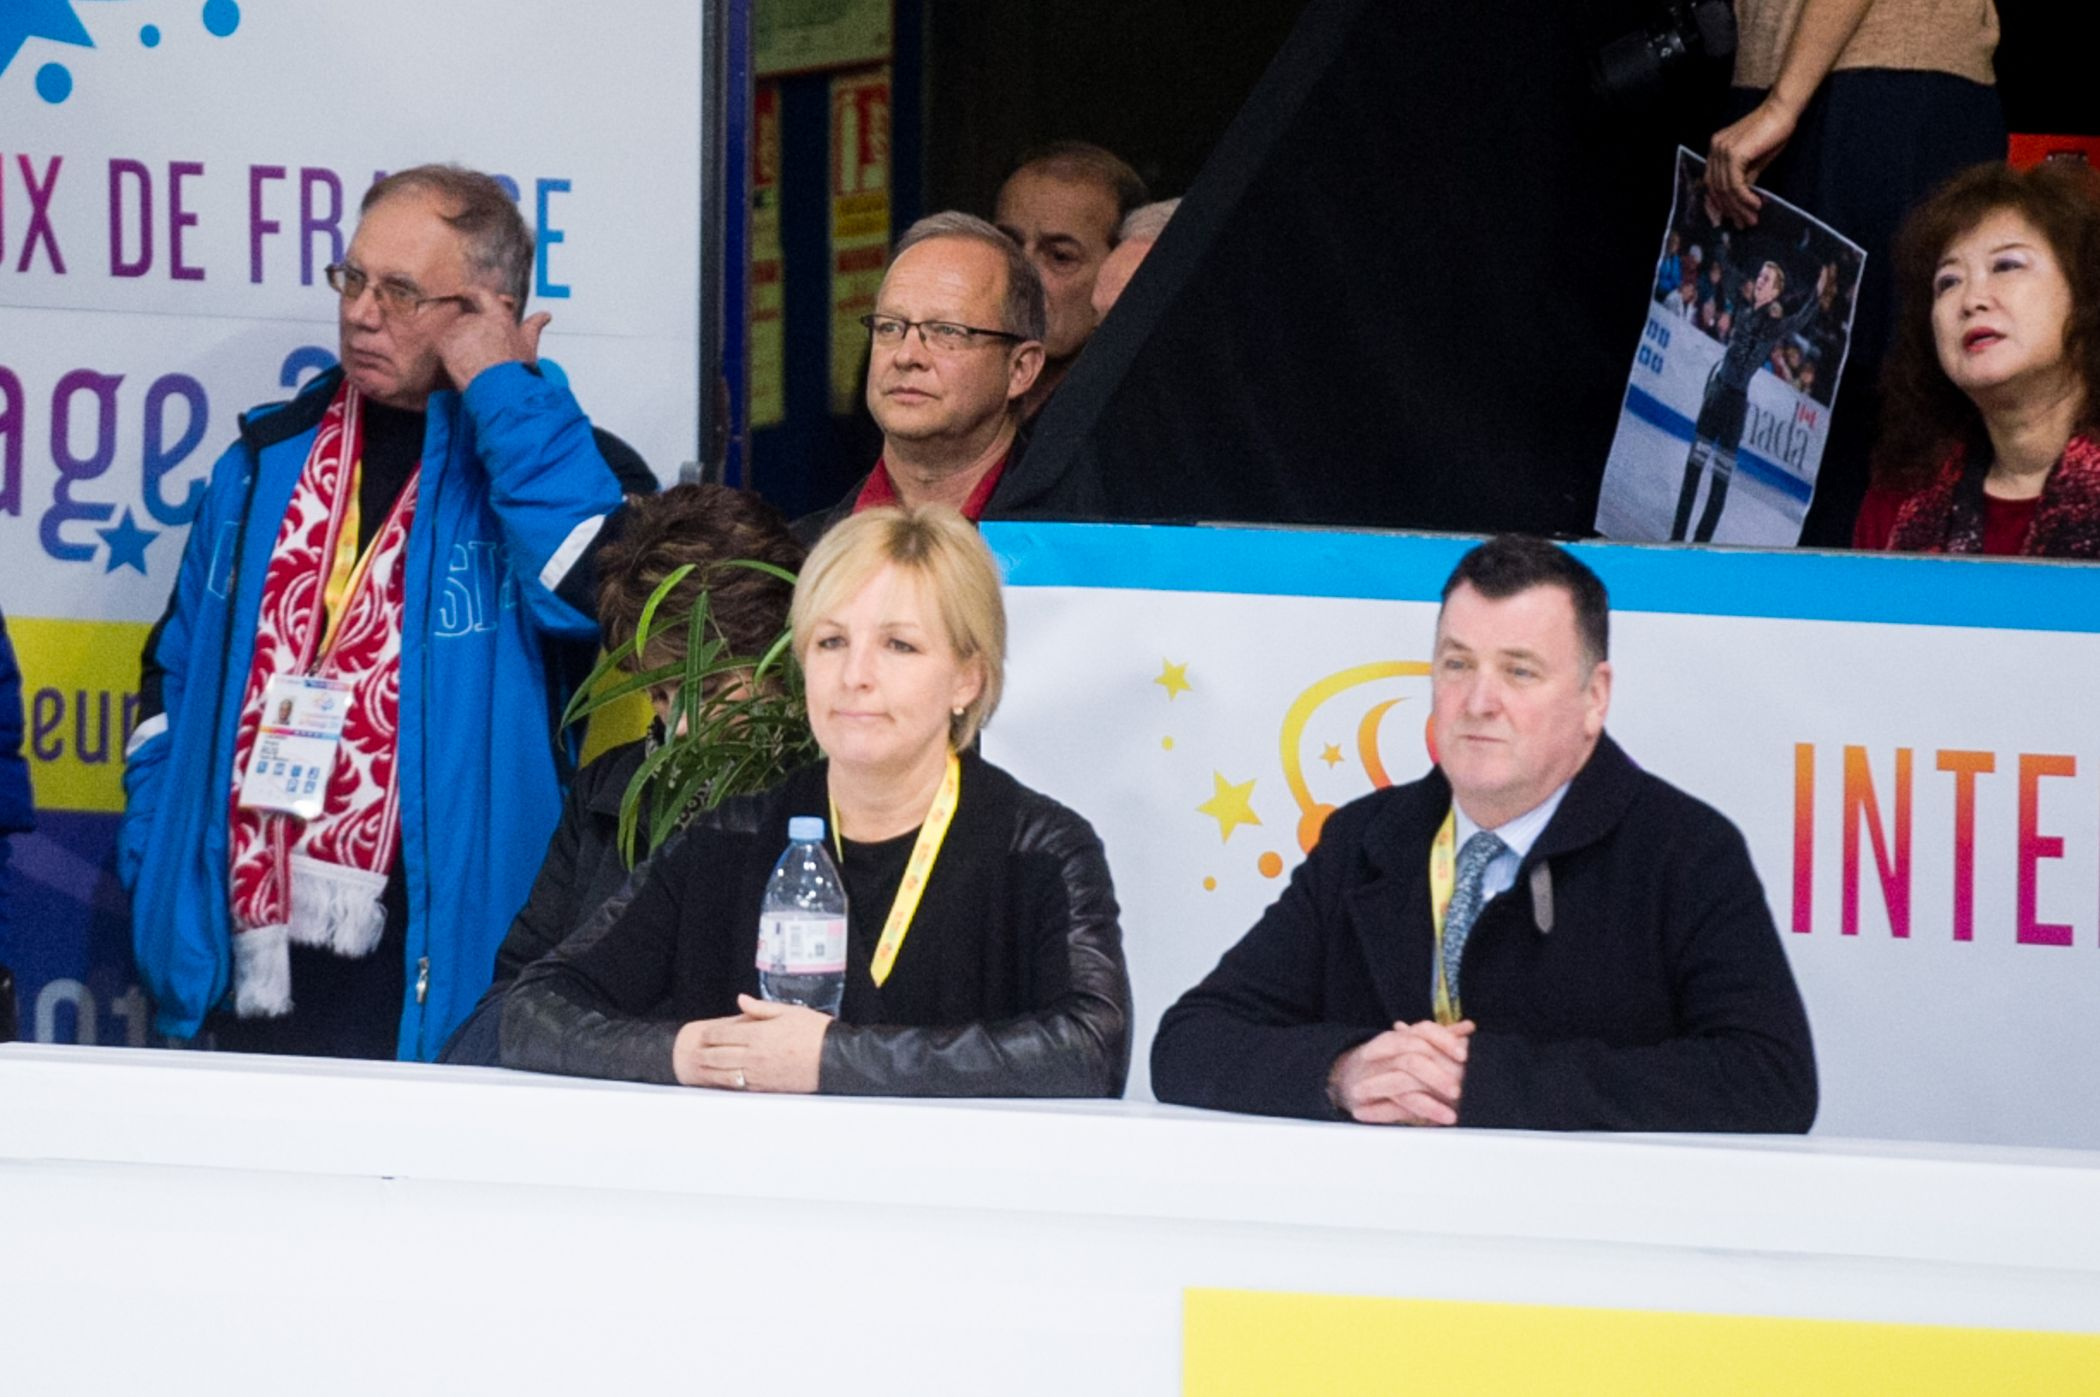 Brian Orser comments about his students in Graz